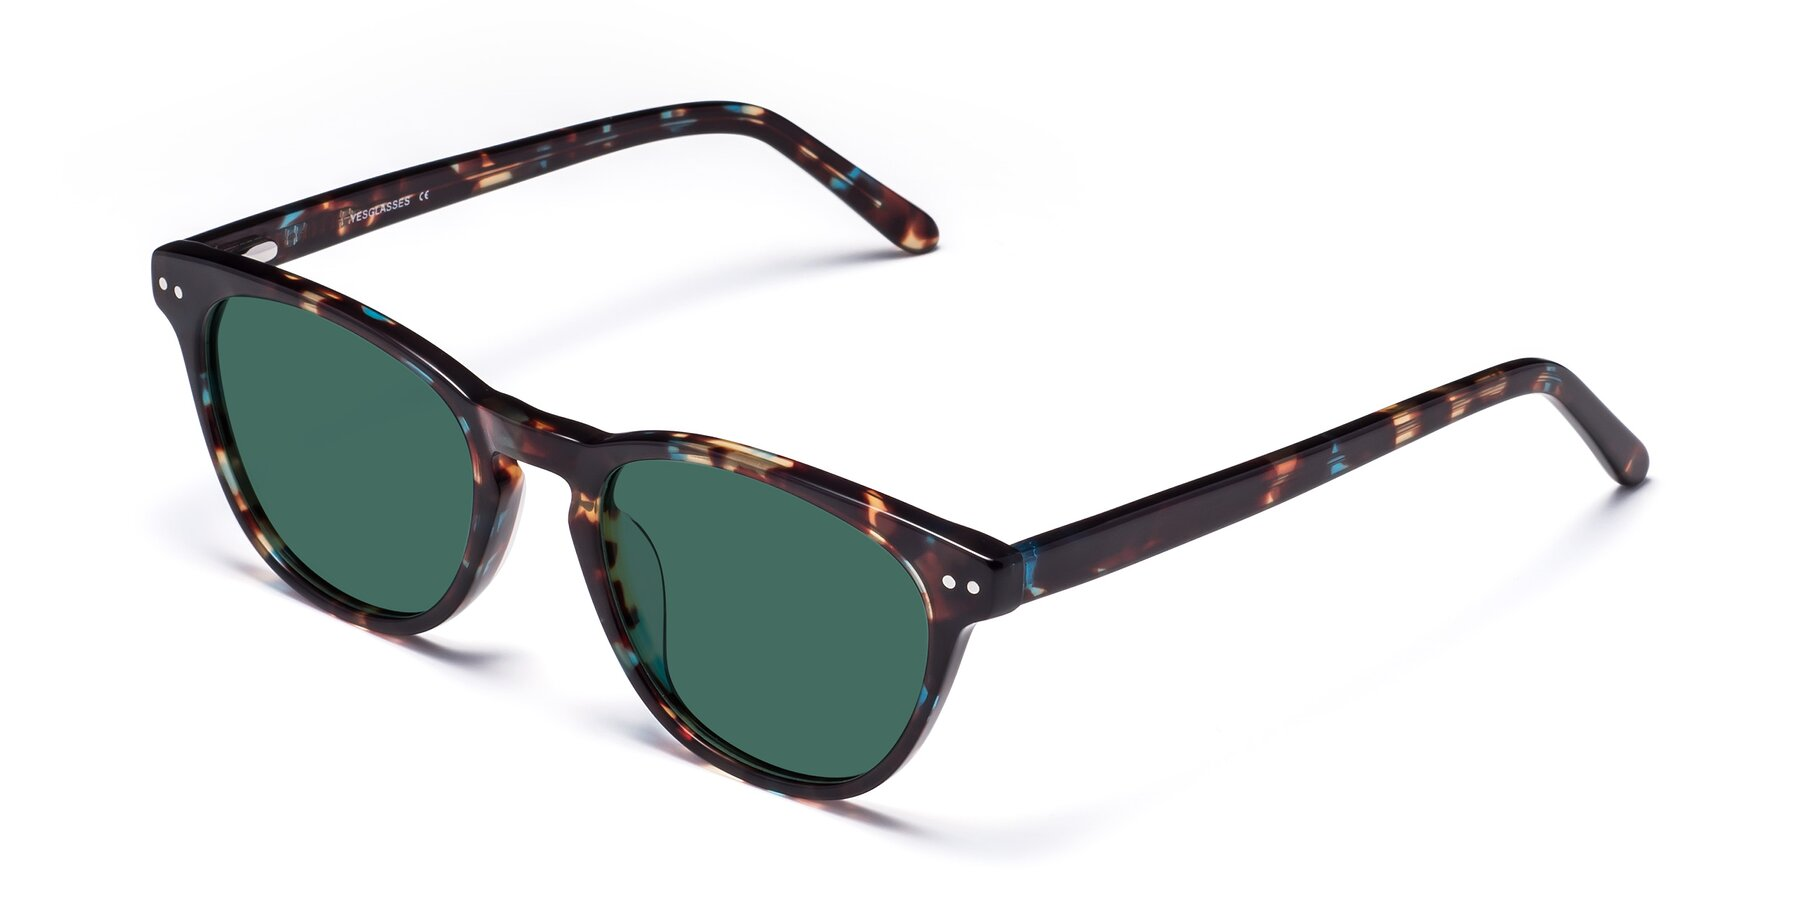 Angle of Blaze in Tortoise-Blue with Green Polarized Lenses